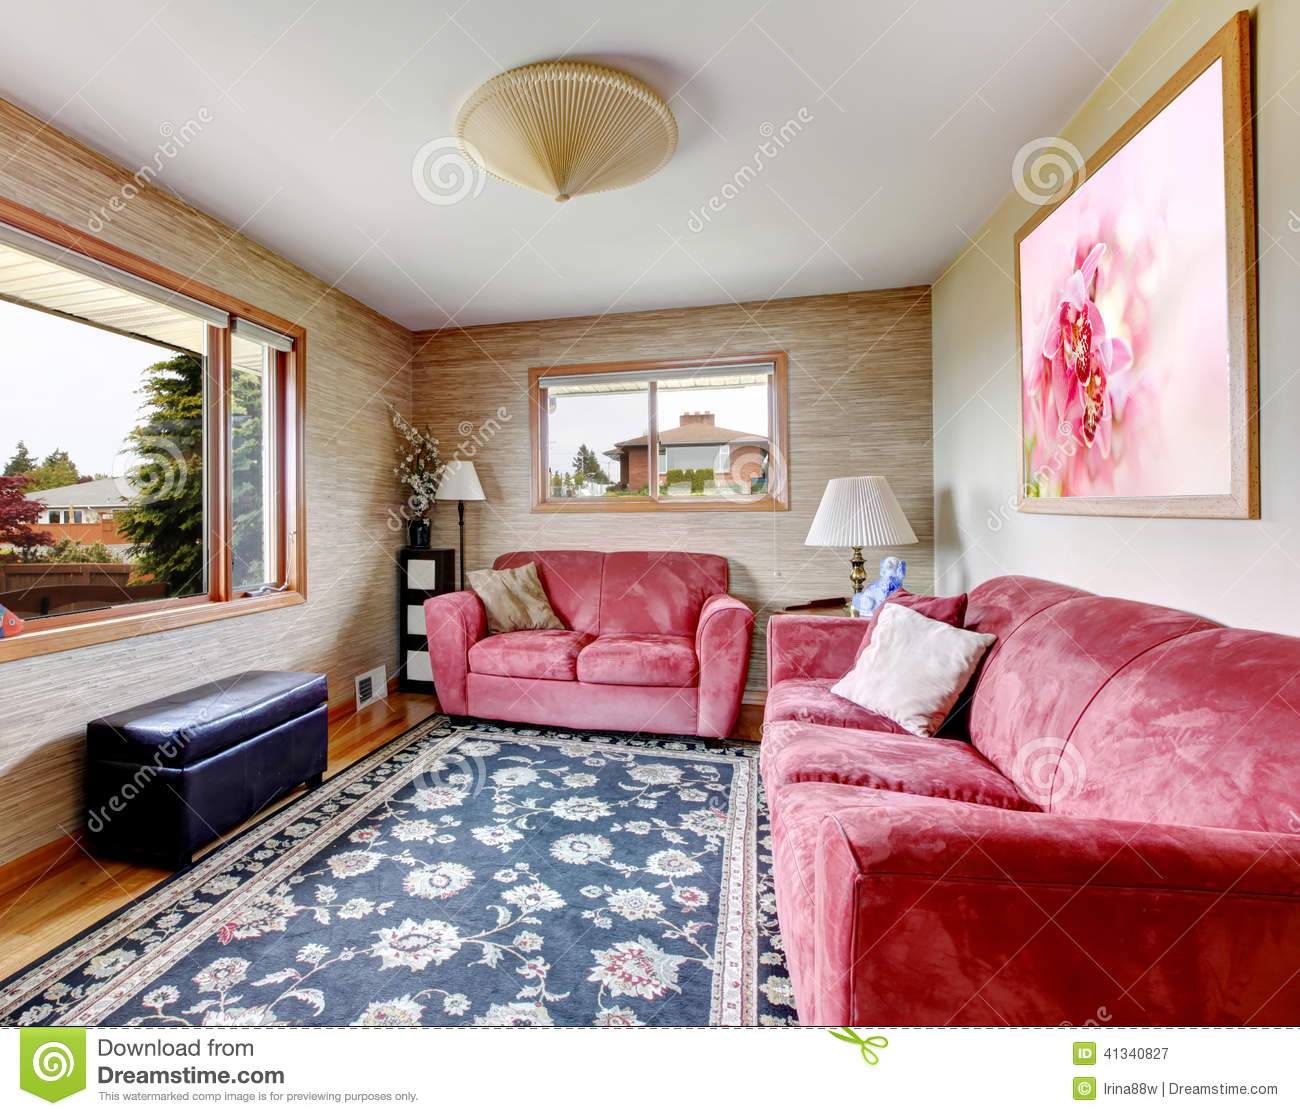 House Interior Red Sofas With Blue Rug Stock Image Image Of Floor